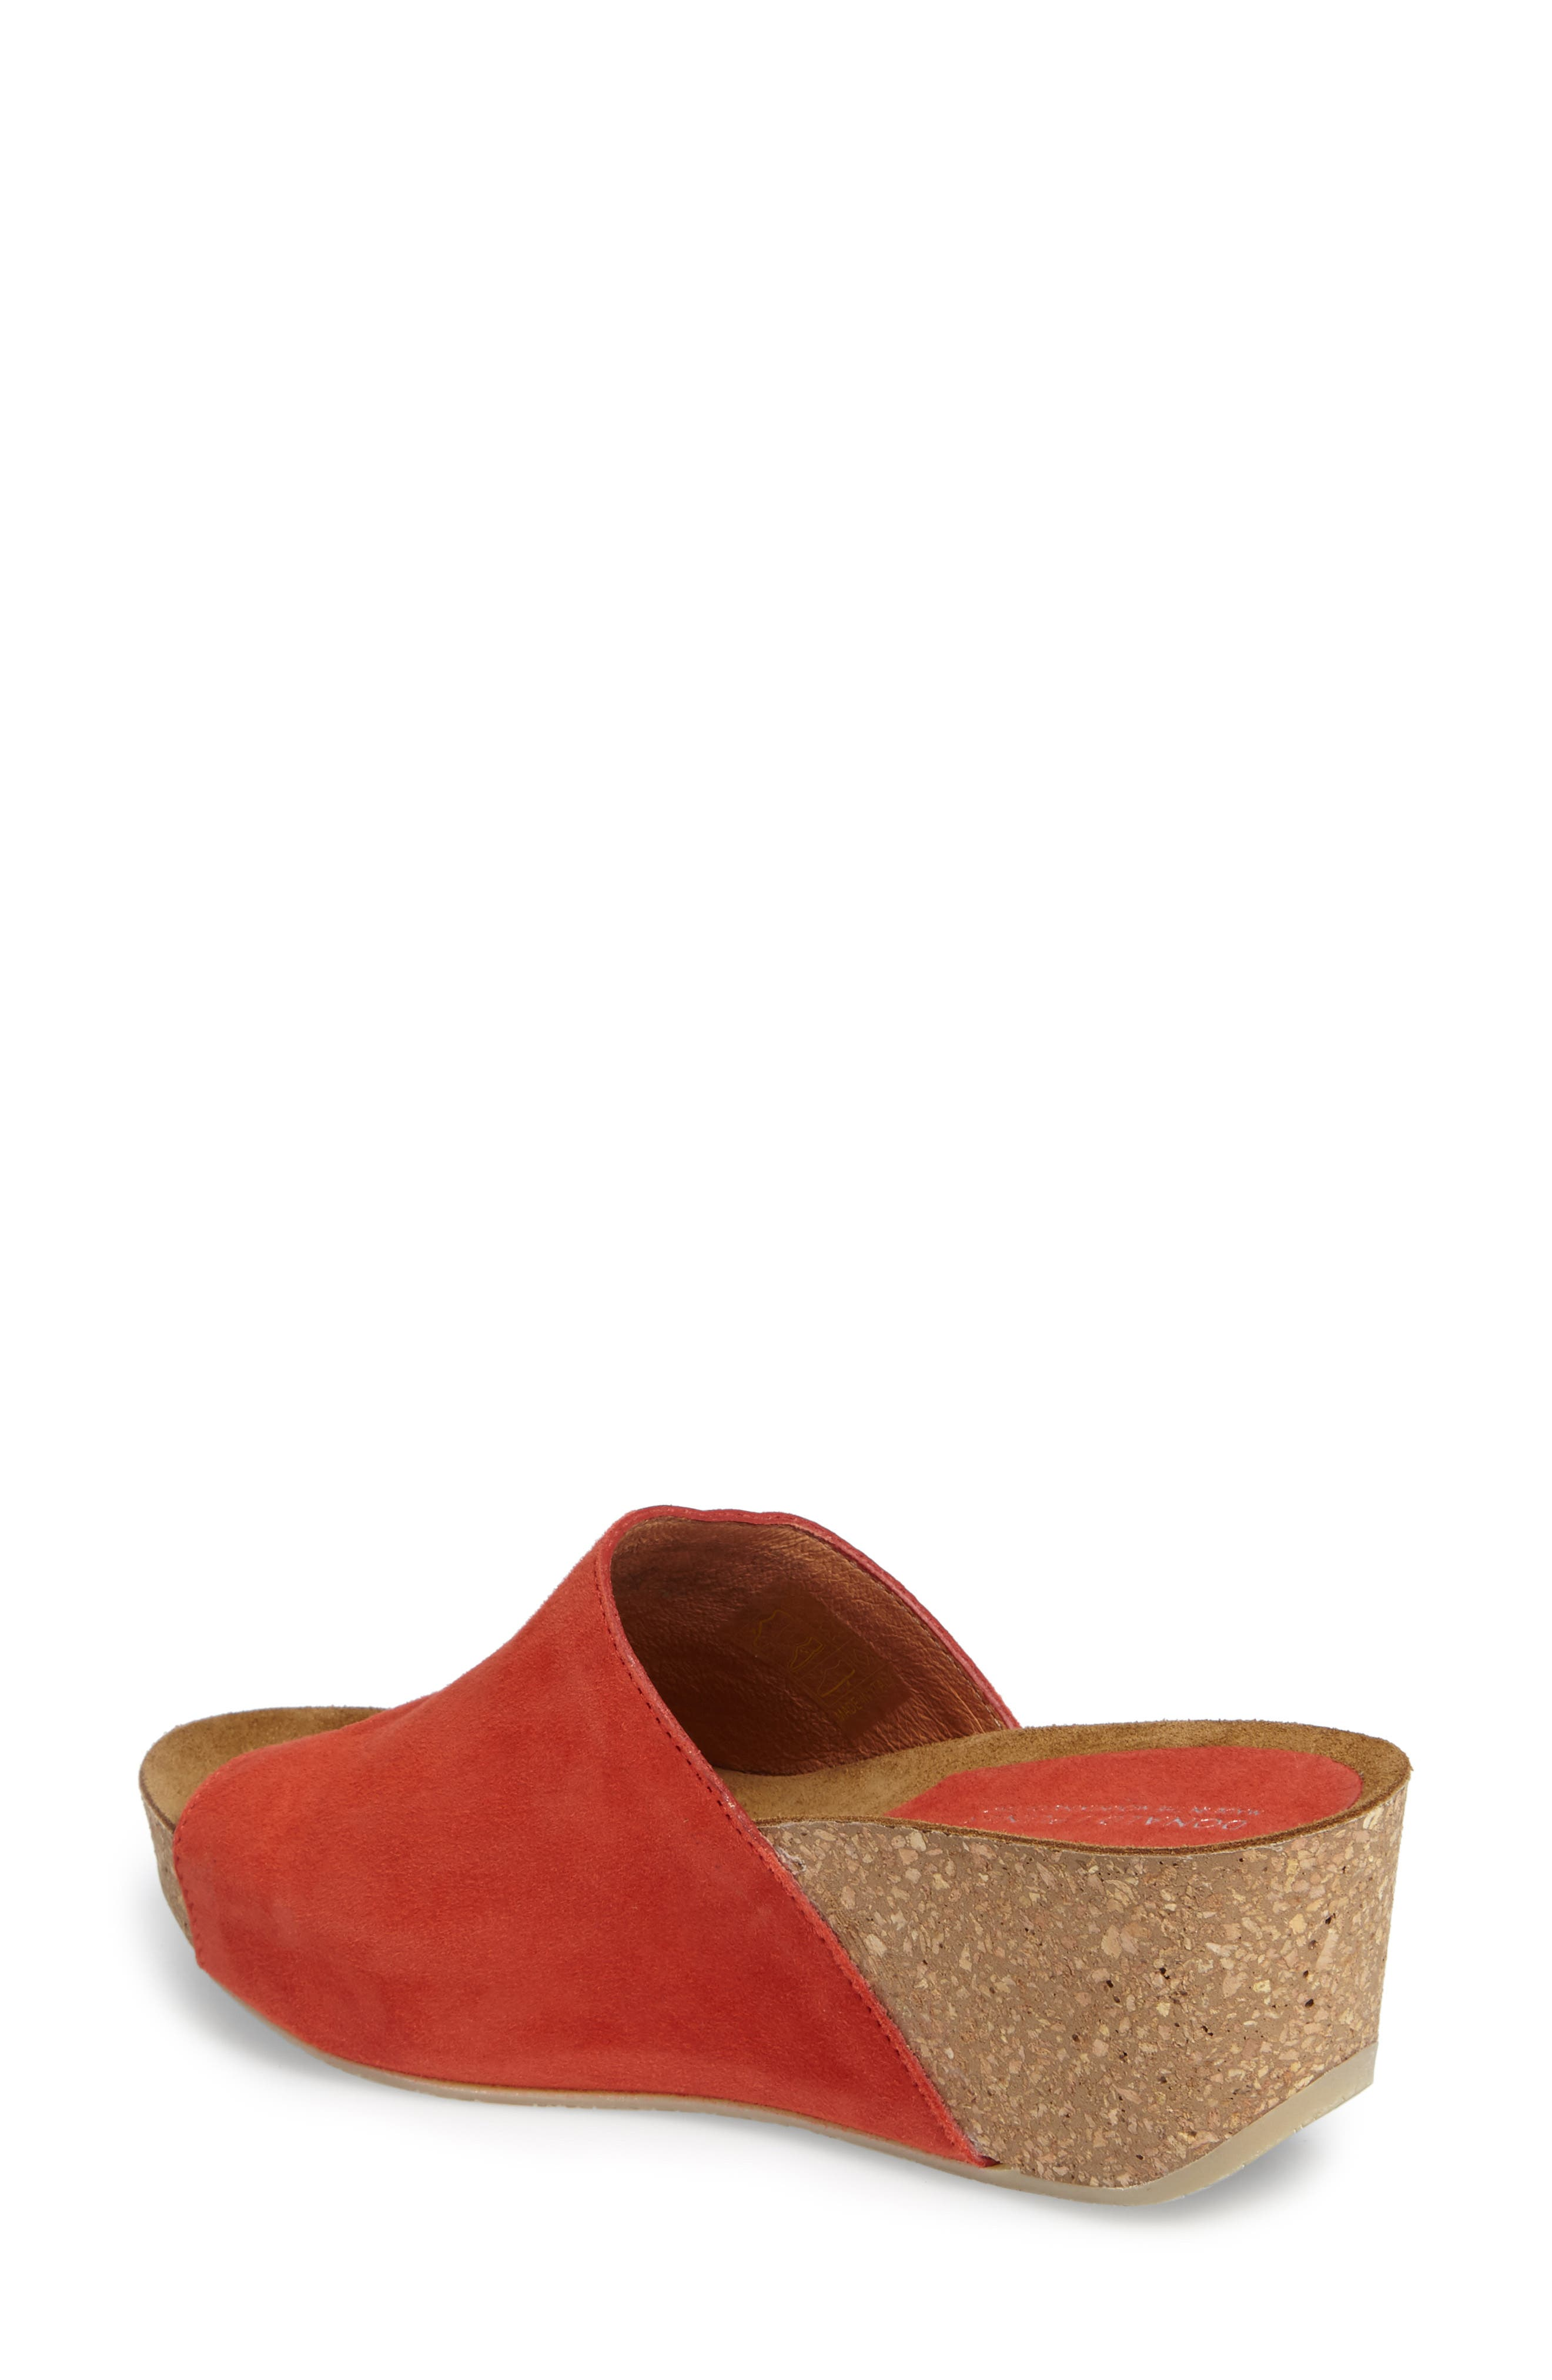 Donald J Pliner Ginie Platform Wedge Sandal,                             Alternate thumbnail 14, color,